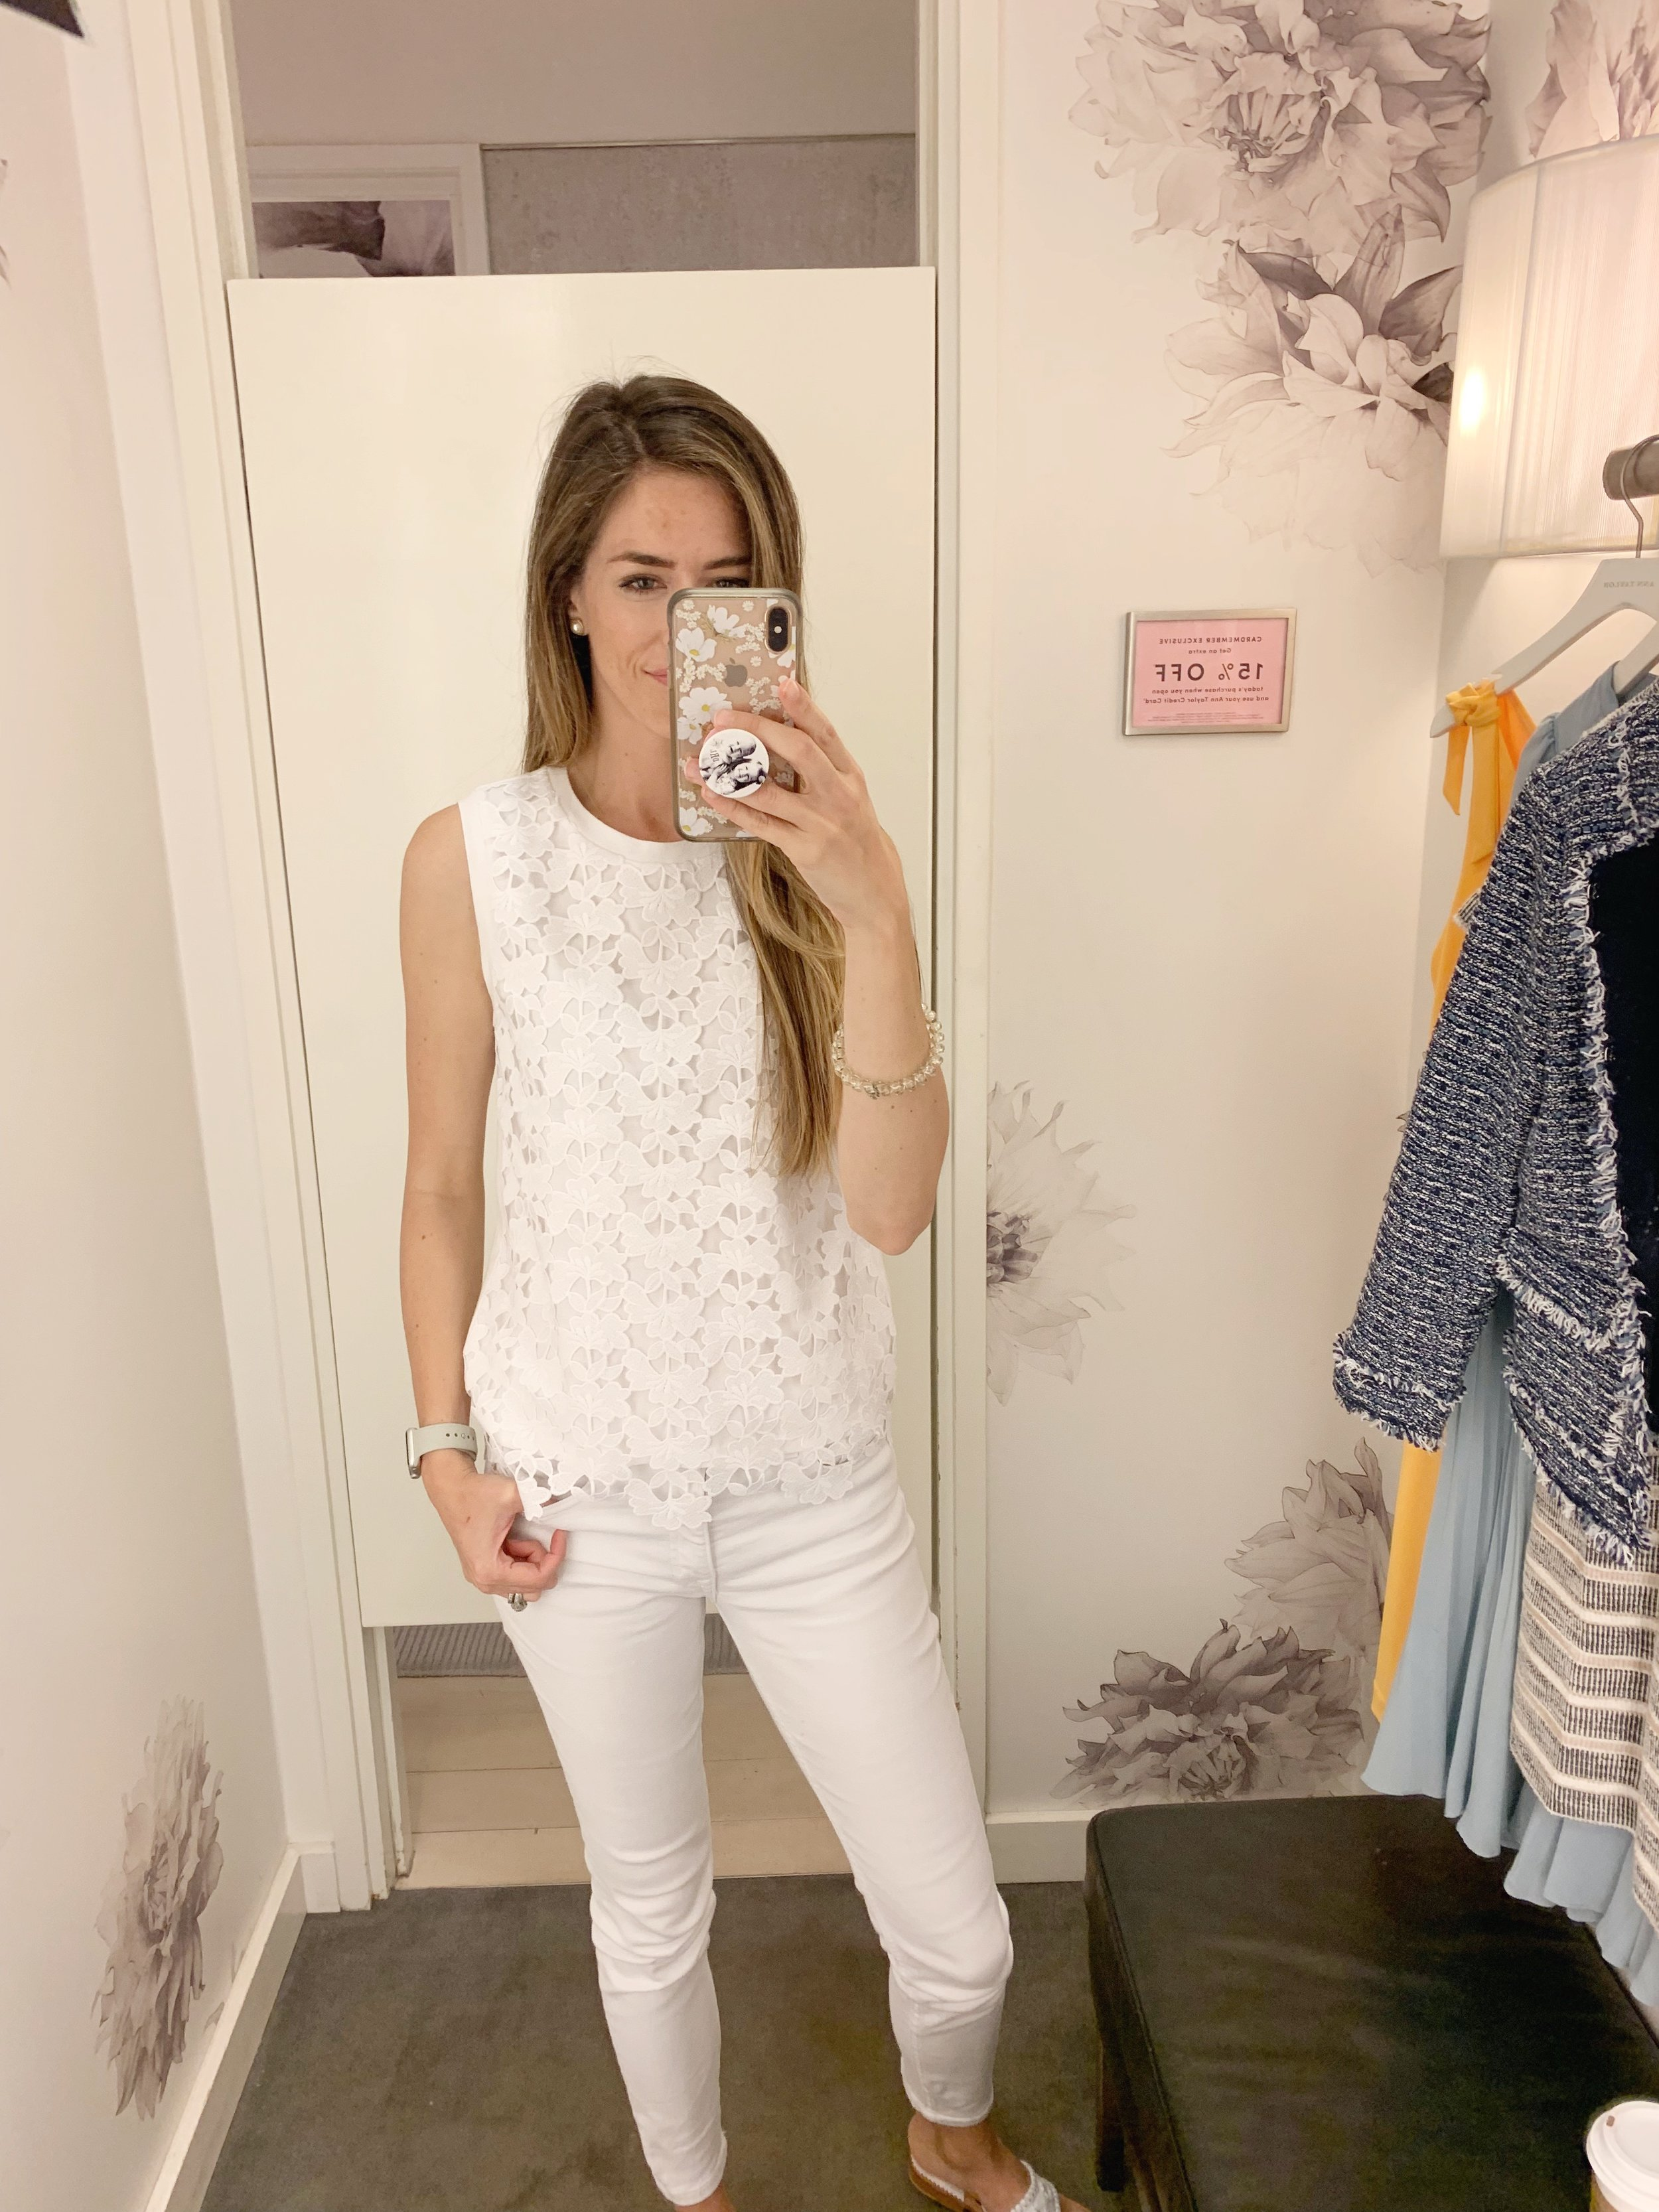 This lace shell is a great alternative to a basic white top. The back is a not lace and it also comes in navy with a white lace overlay. The sale price is $49 $49 plus the additional 50%/60%/70% off depending on how many items you purchase. (70% off is $15)